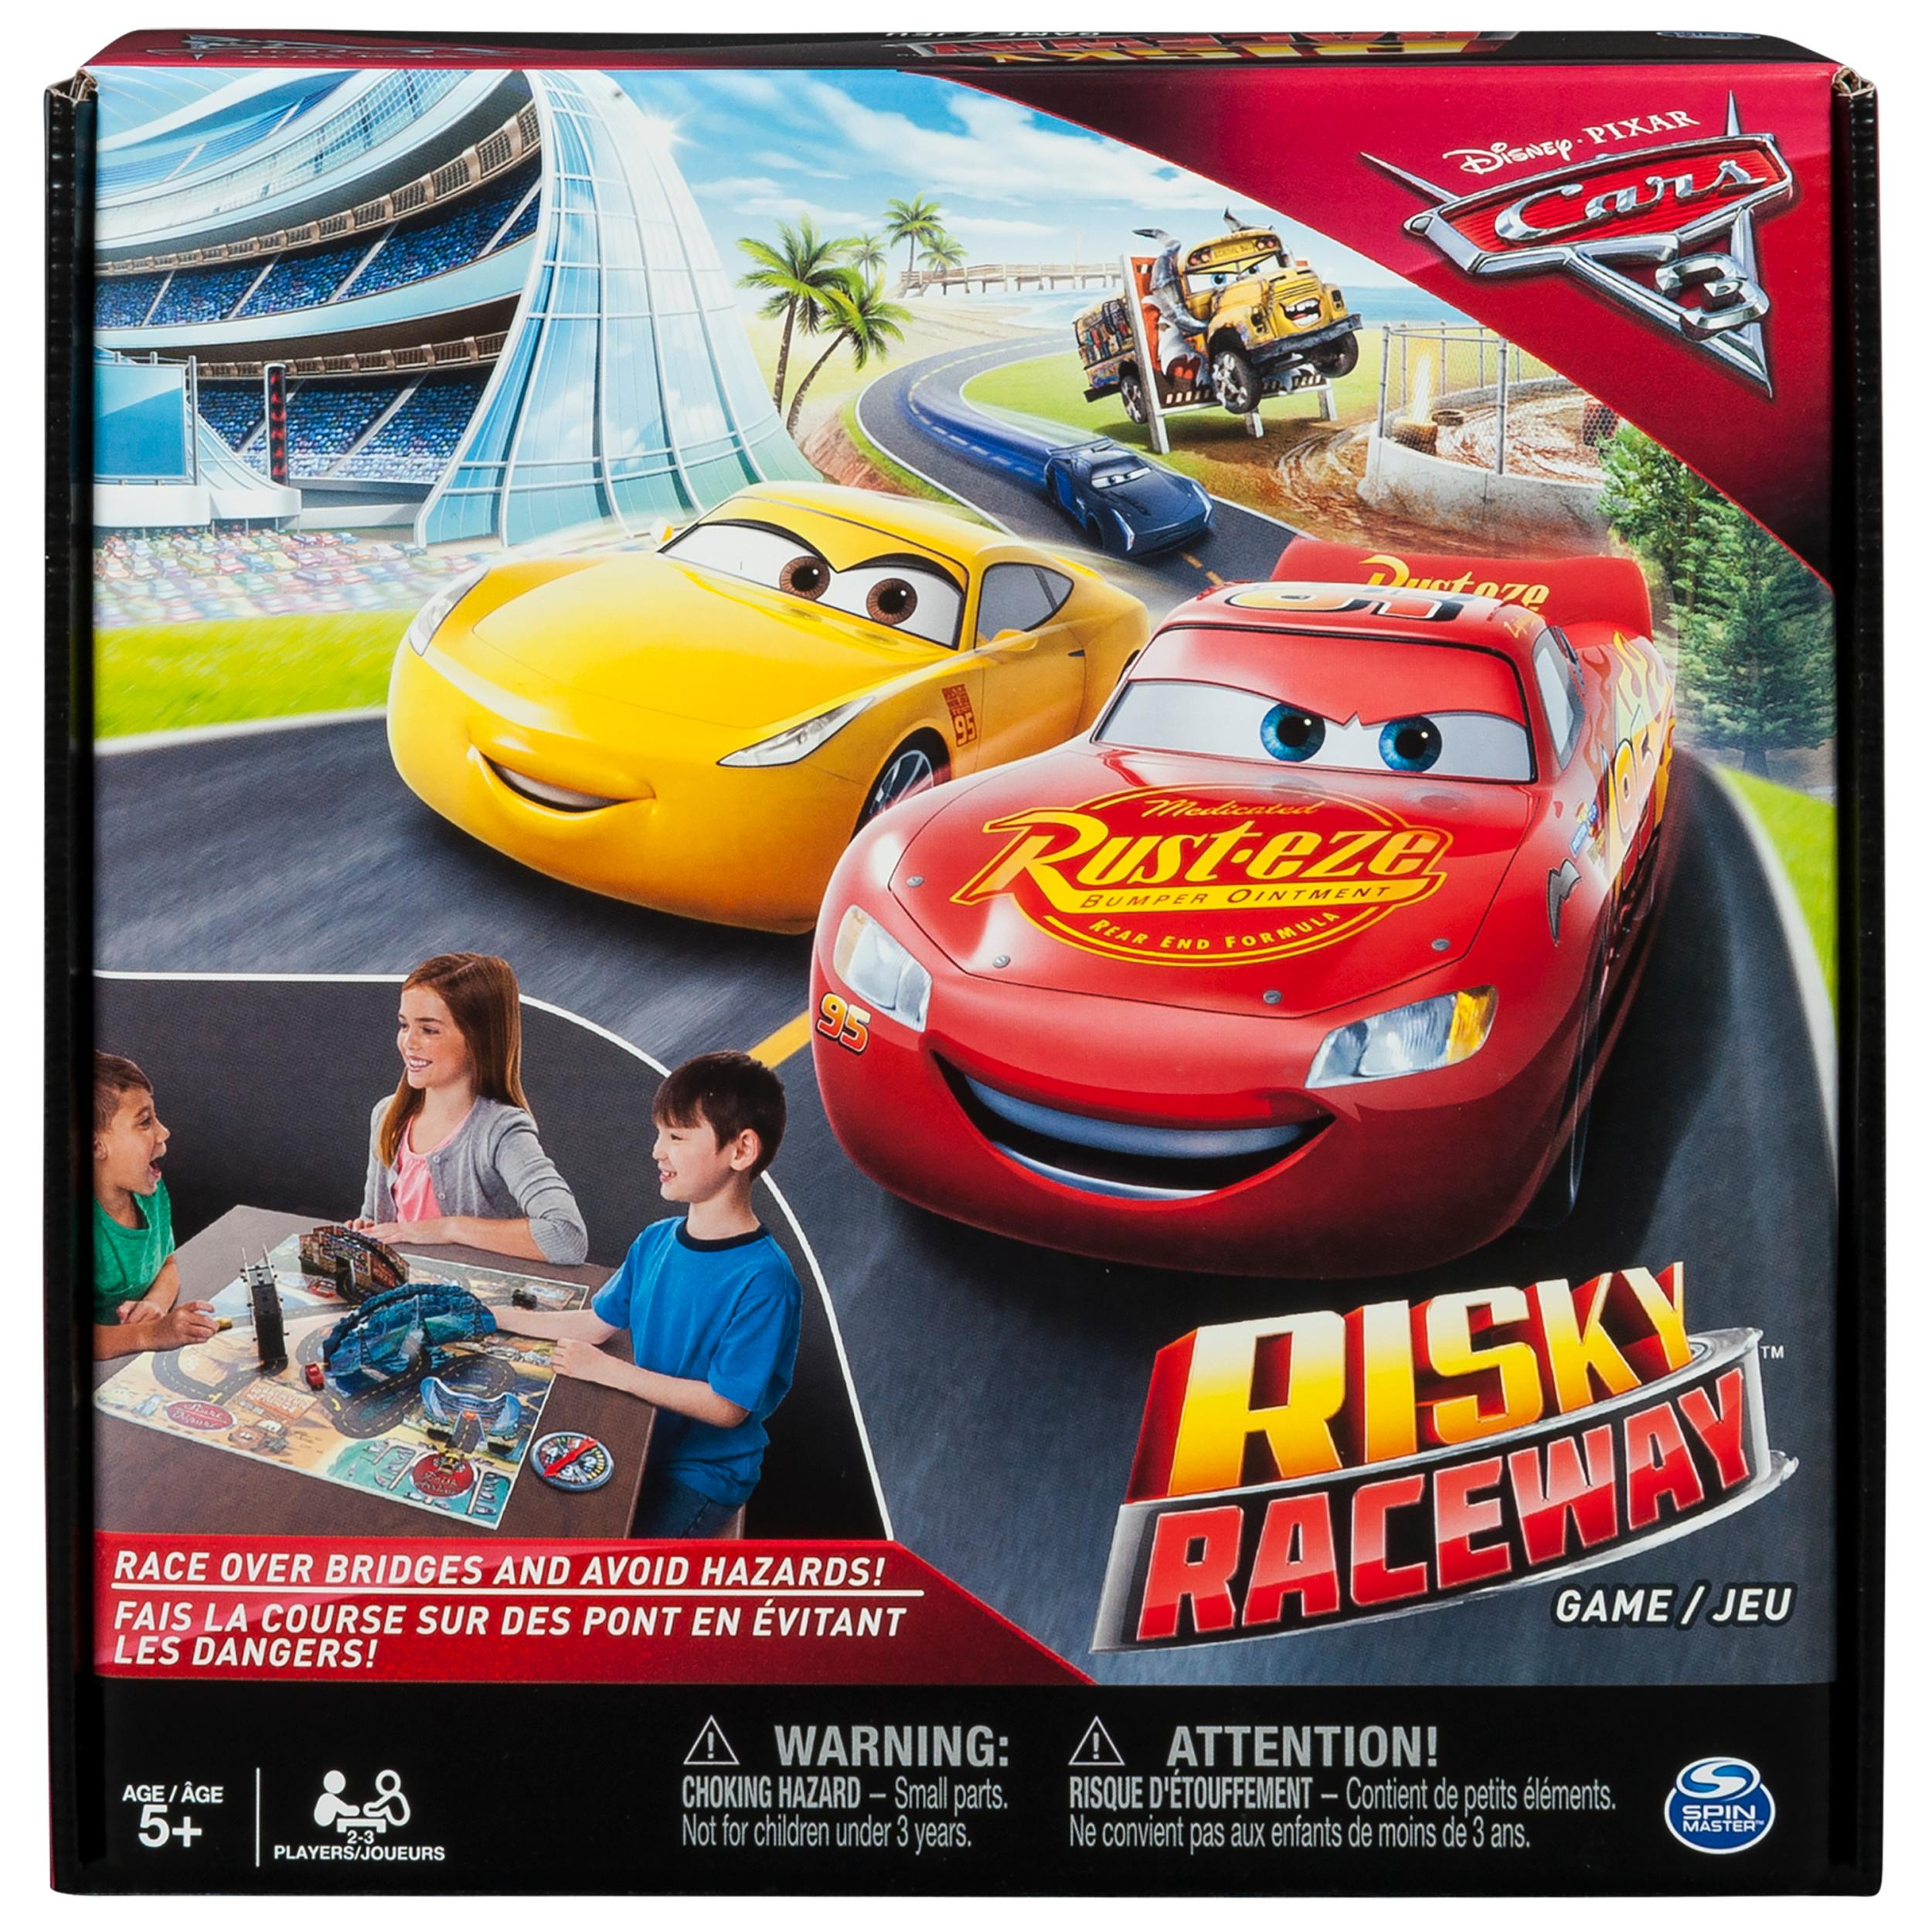 Amazon.com: Spin Master Games - Cars 3 - Risky Raceway - Board Game ...